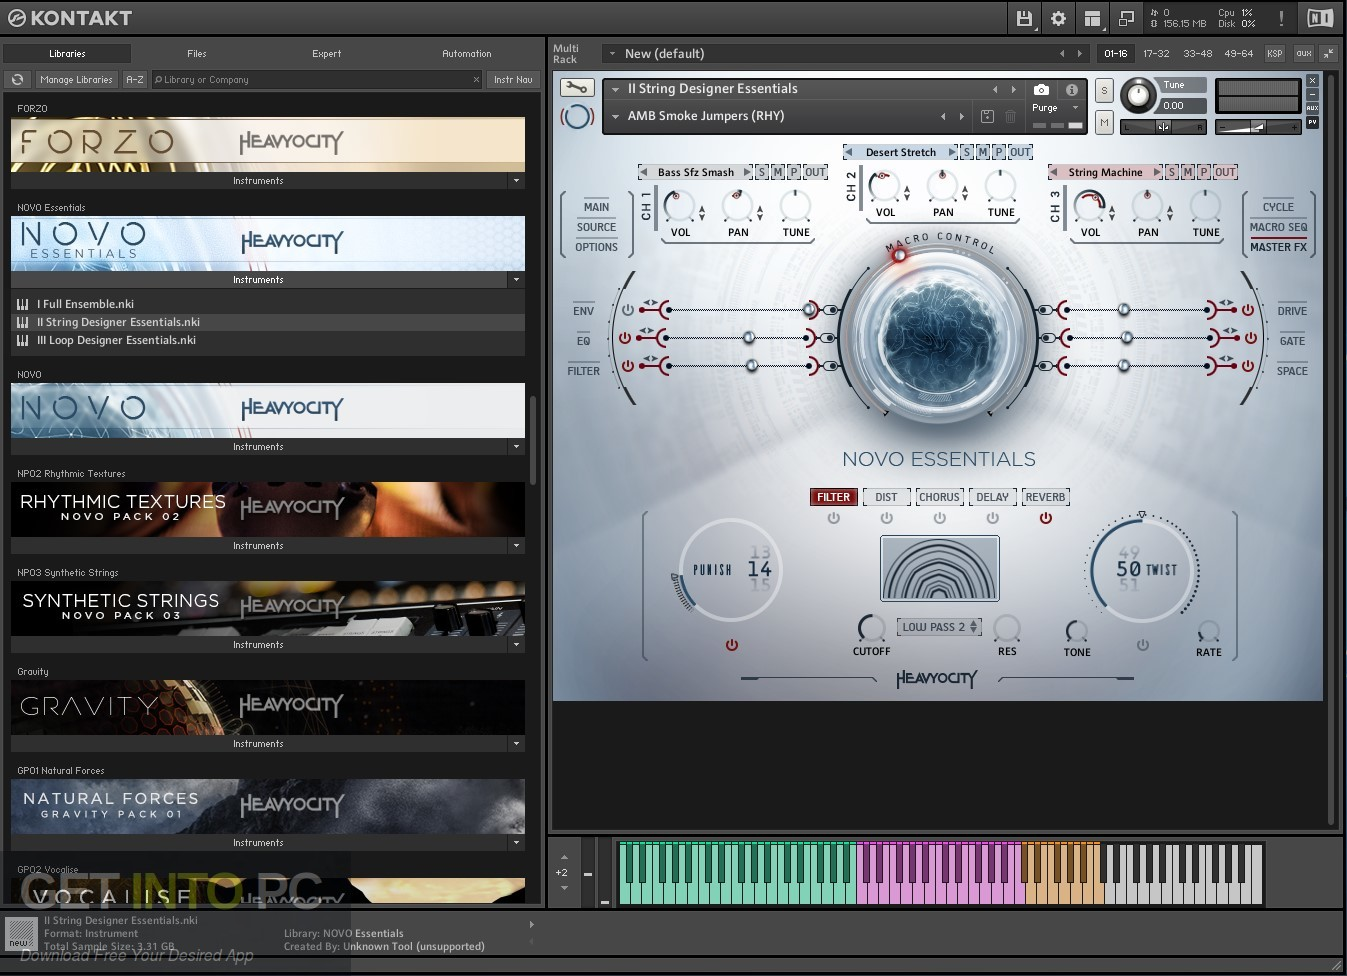 Heavyocity - NOVO Essentials (KONTAKT) Library Direct Link Download-GetintoPC.com